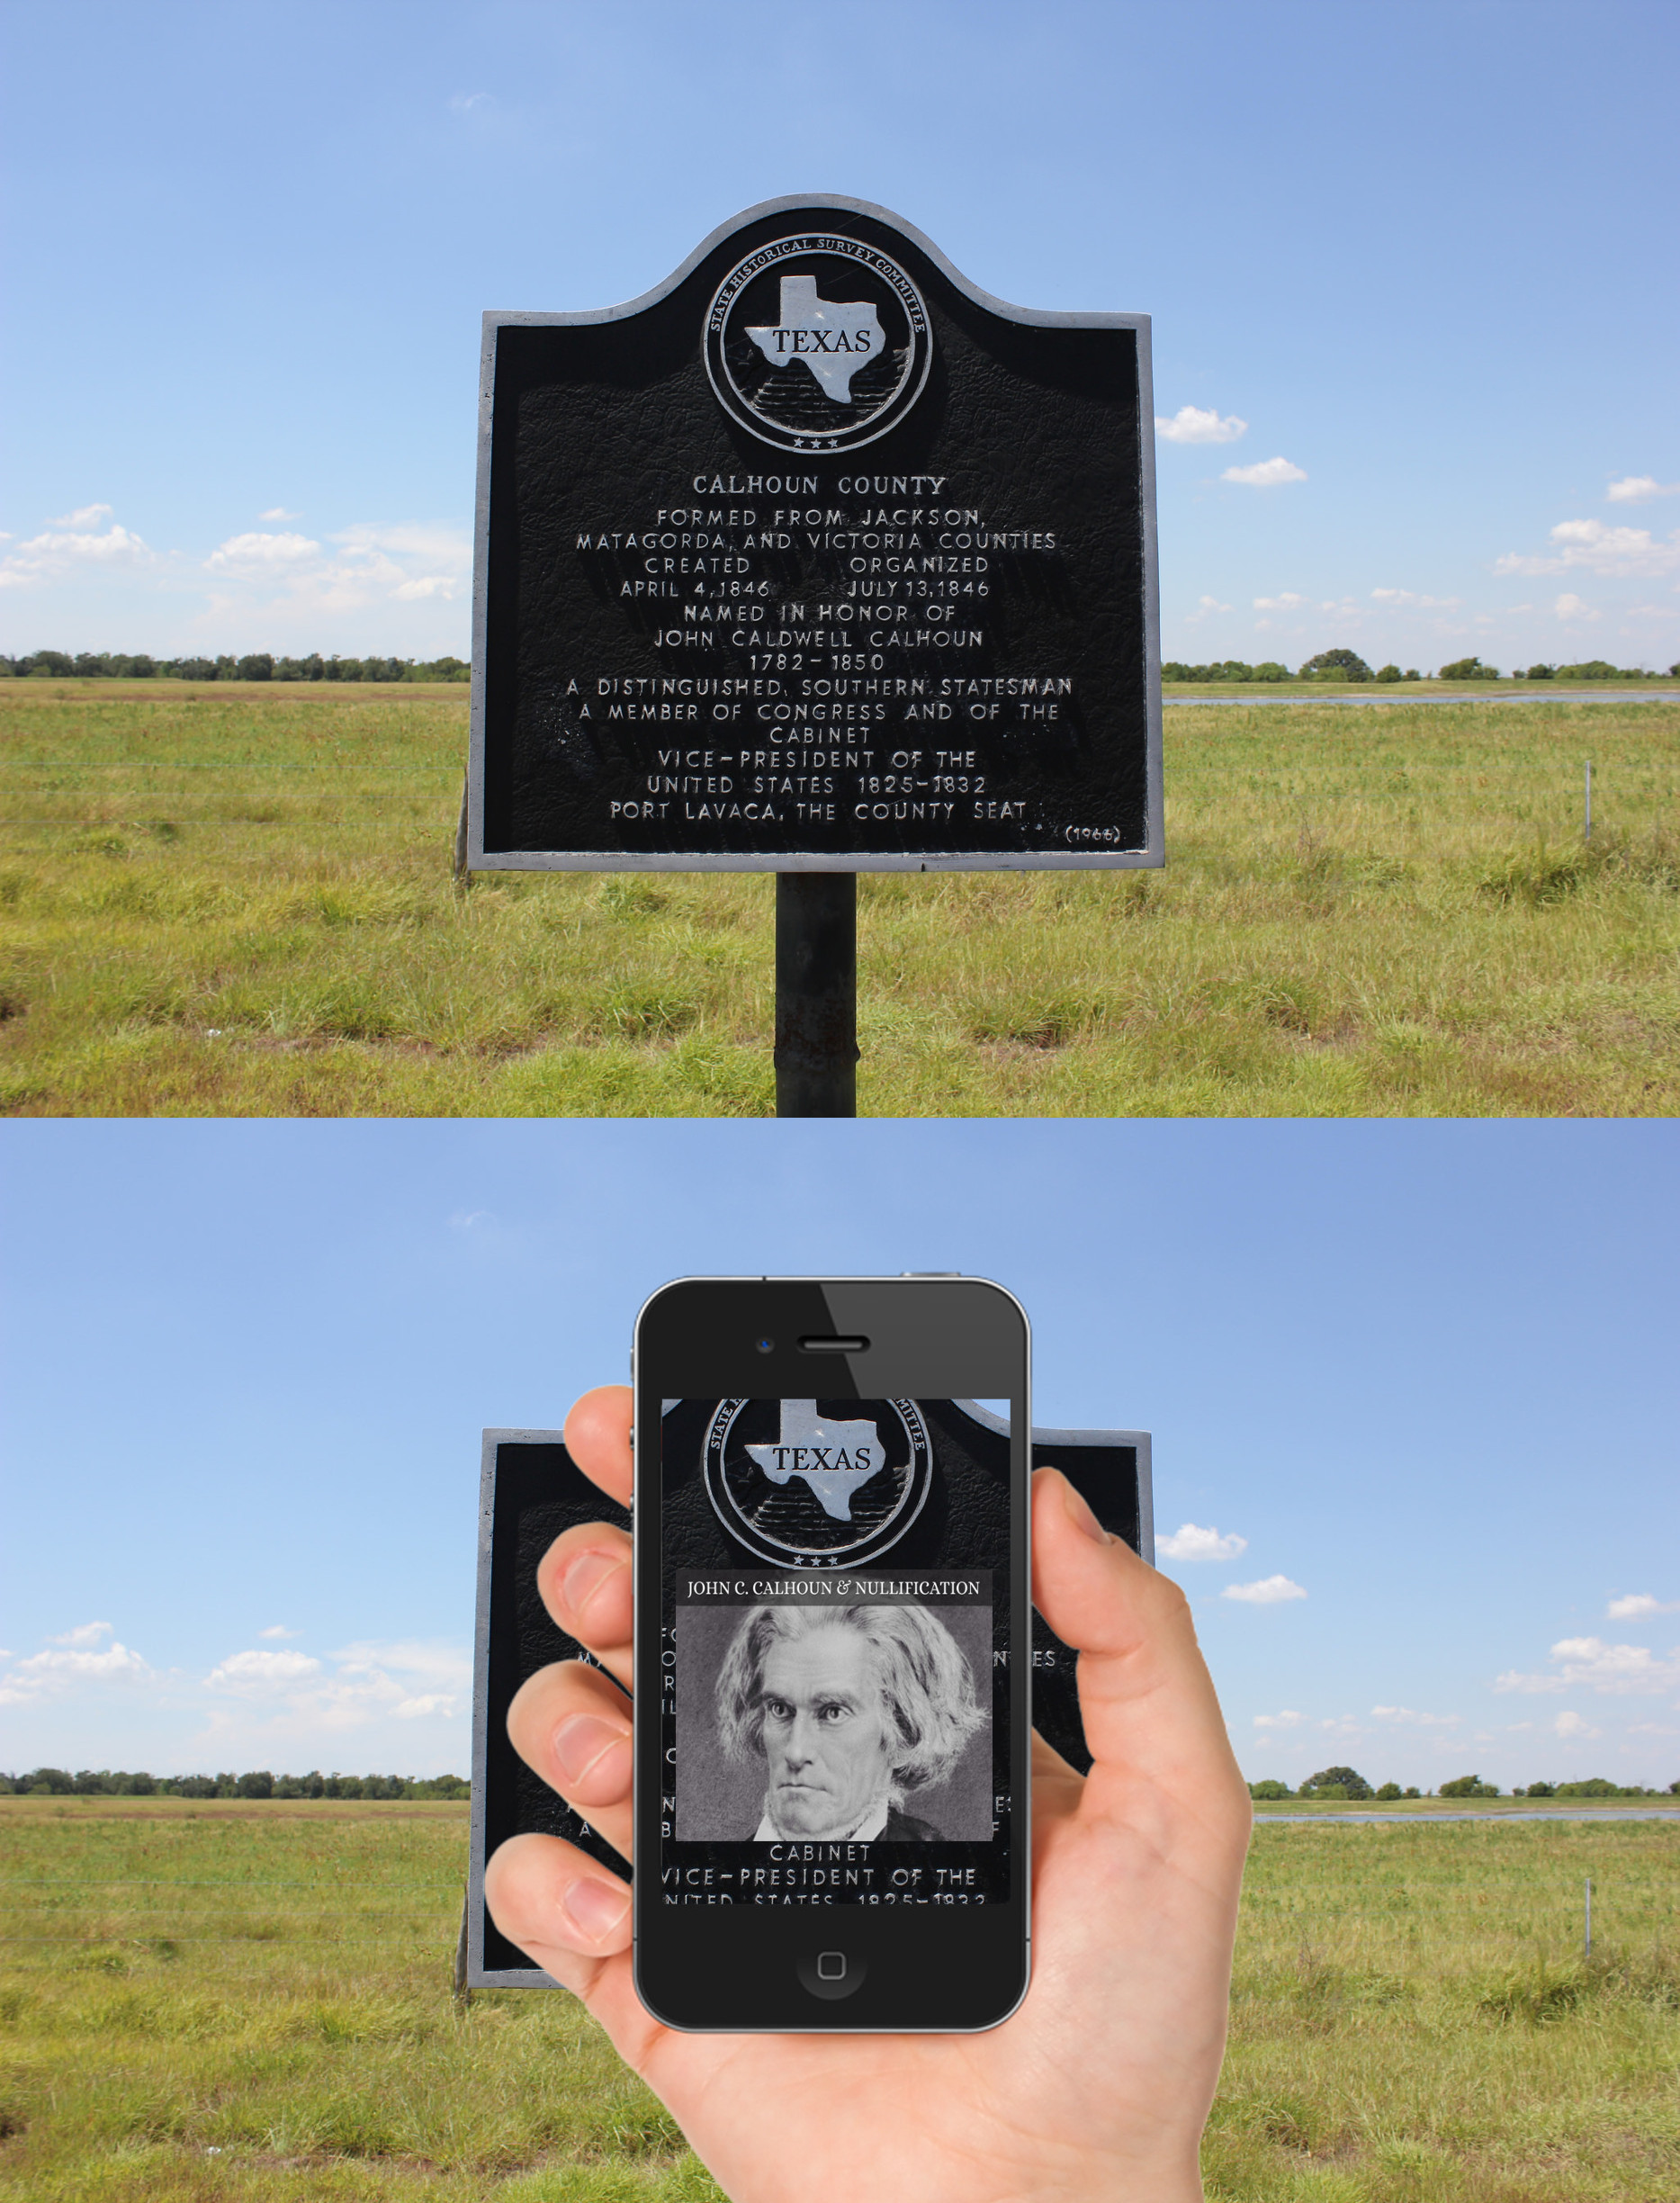 Augmented reality can be used to overlay digital information onto existing texts such as historical markers. This modified image is based on a photograph by Nicholas Henderson.